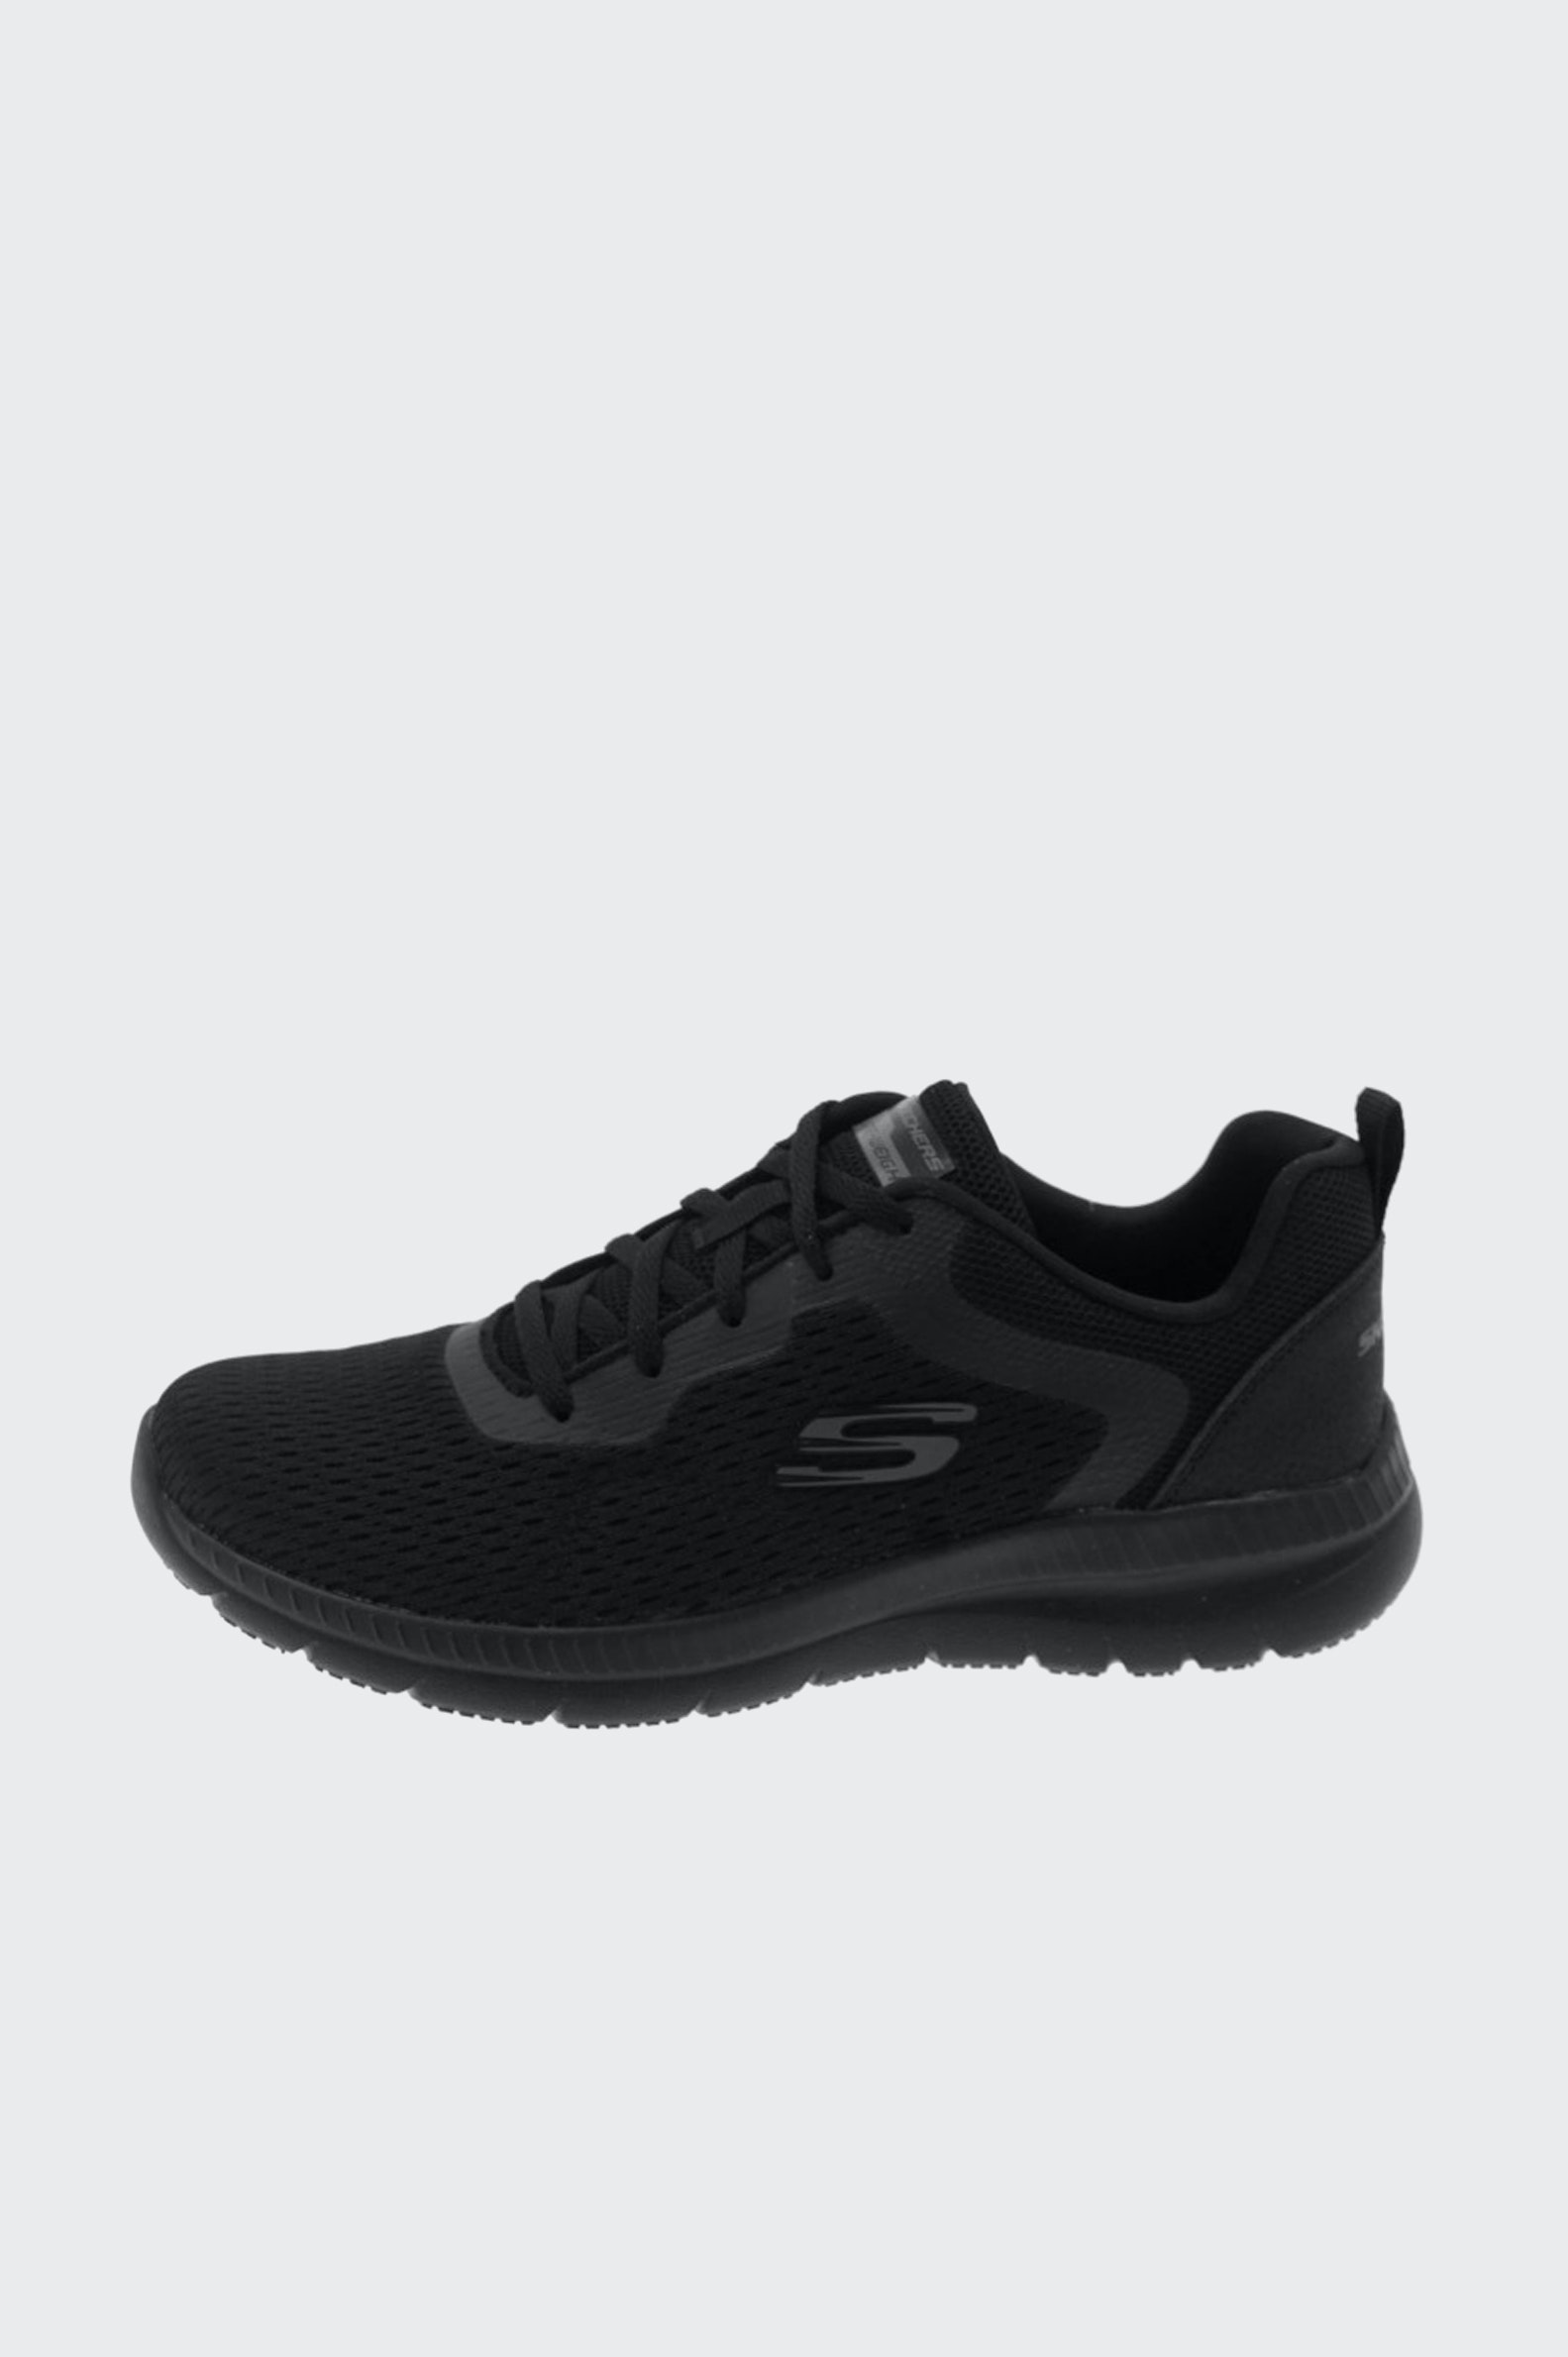 SAPATILHAS CASUAL SKECHERS SKECH-AIR MULHER